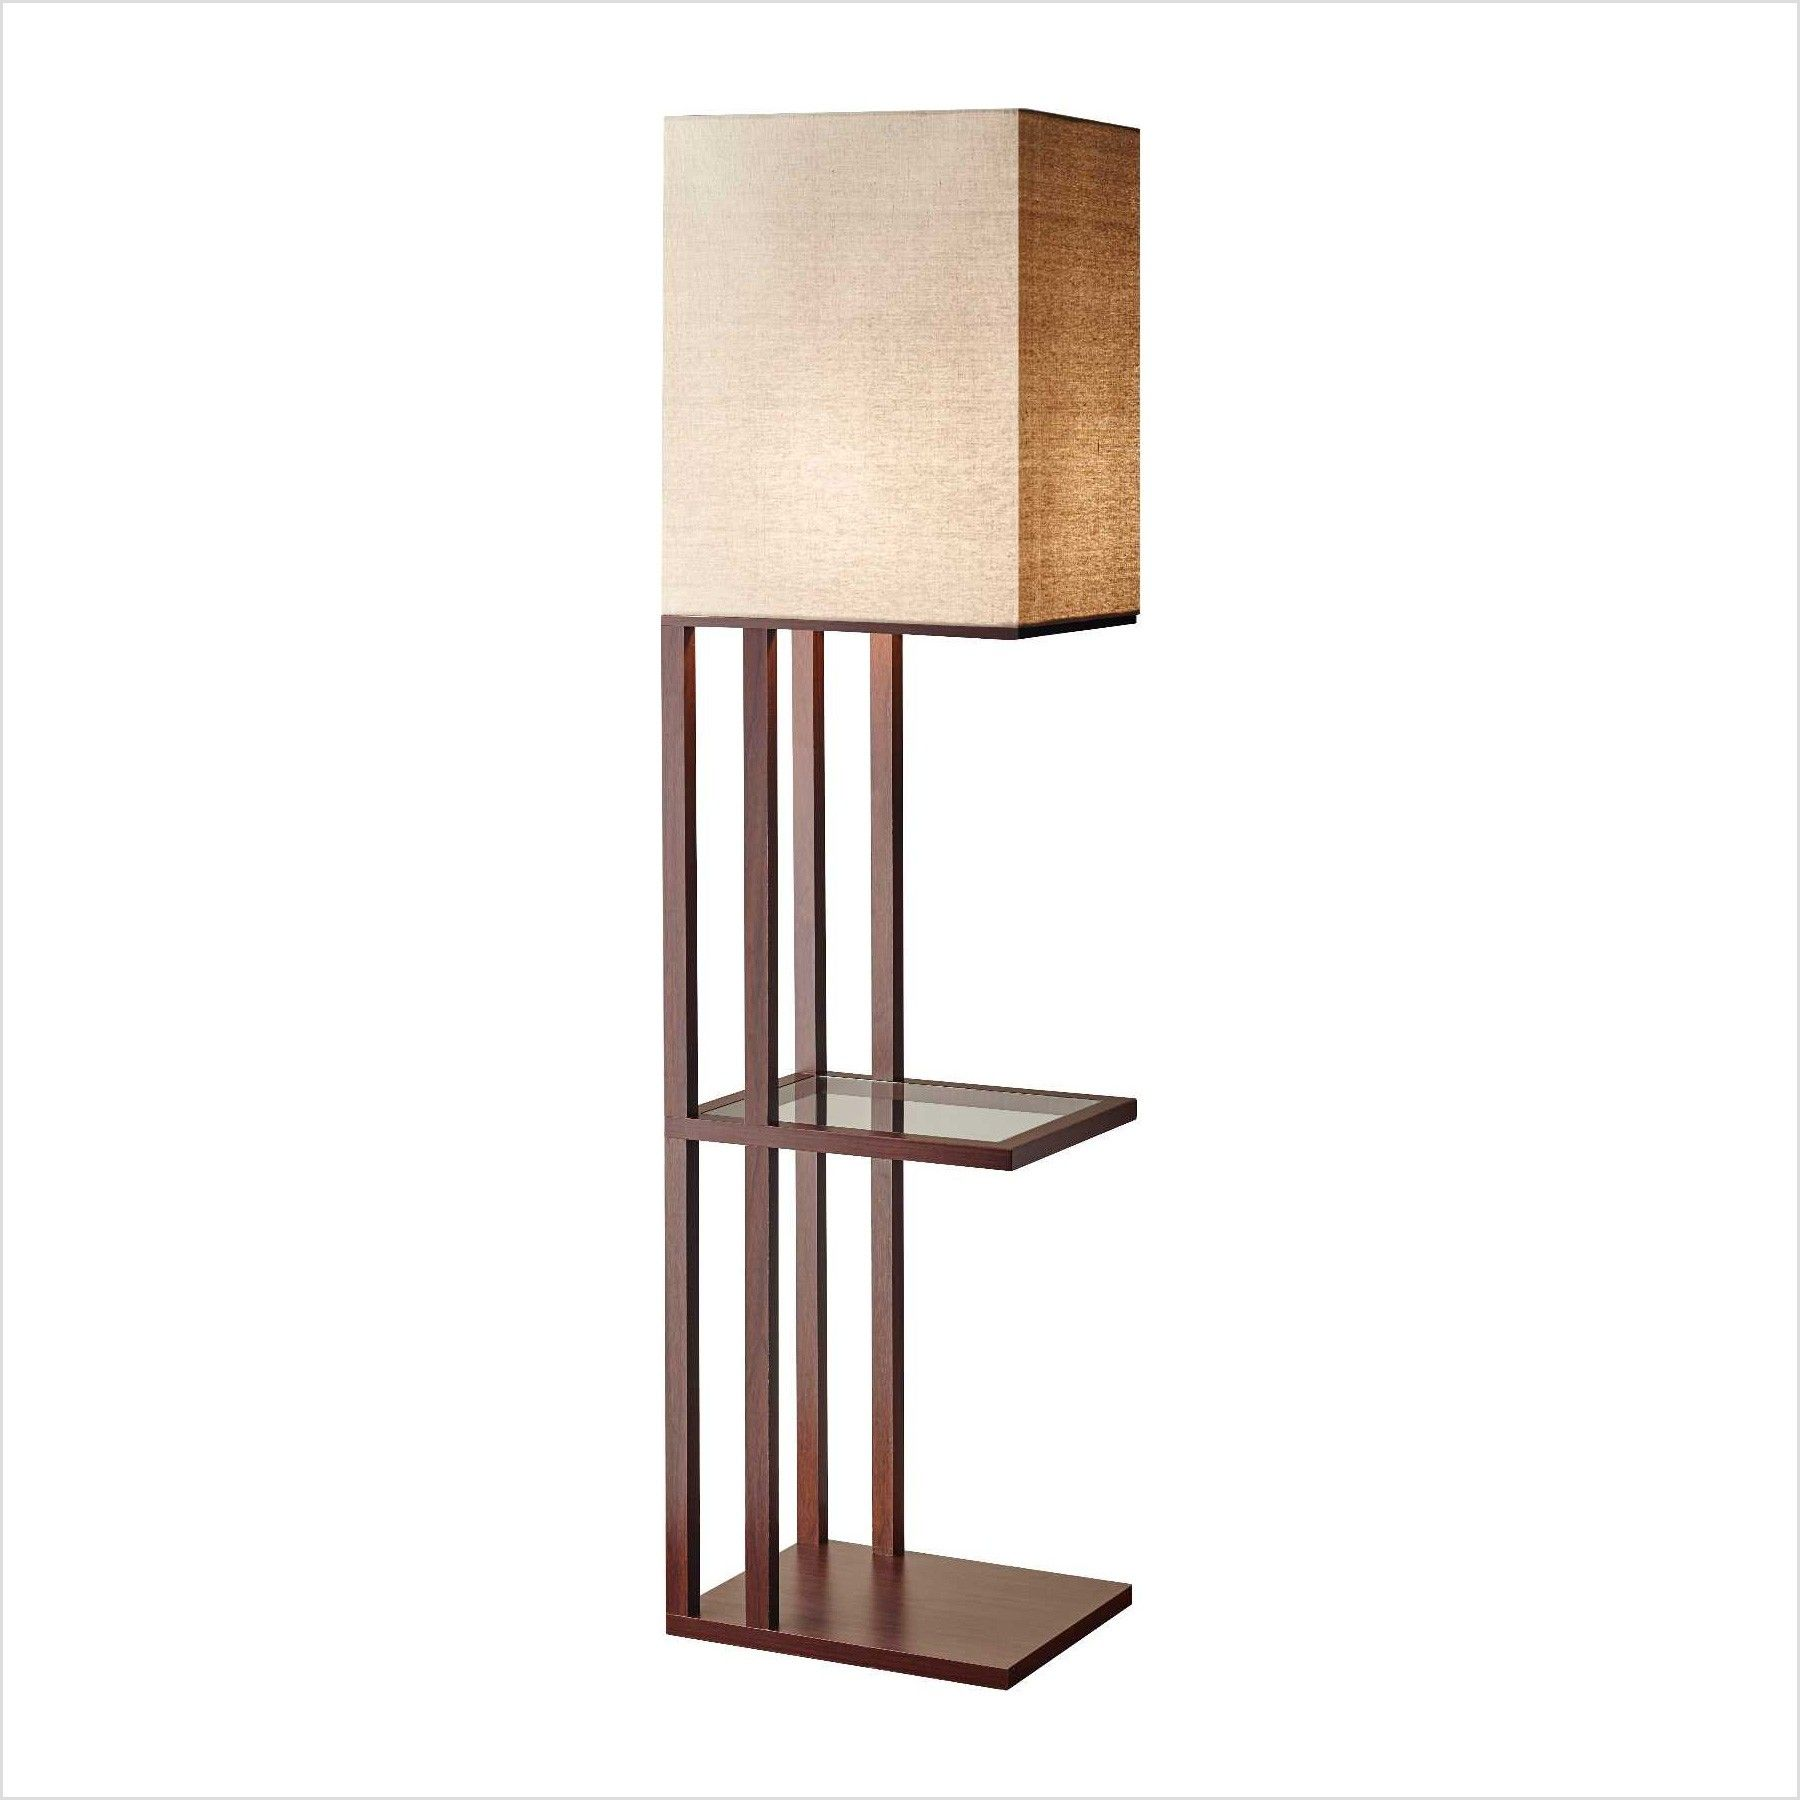 Standing Lamp With Shelves Awesome Floor Lamp With Round Glass Shelves Stylish Floor Lamp With Shelves Of Stand Floor Lamp With Shelves Stylish Floor Lamp Lamp